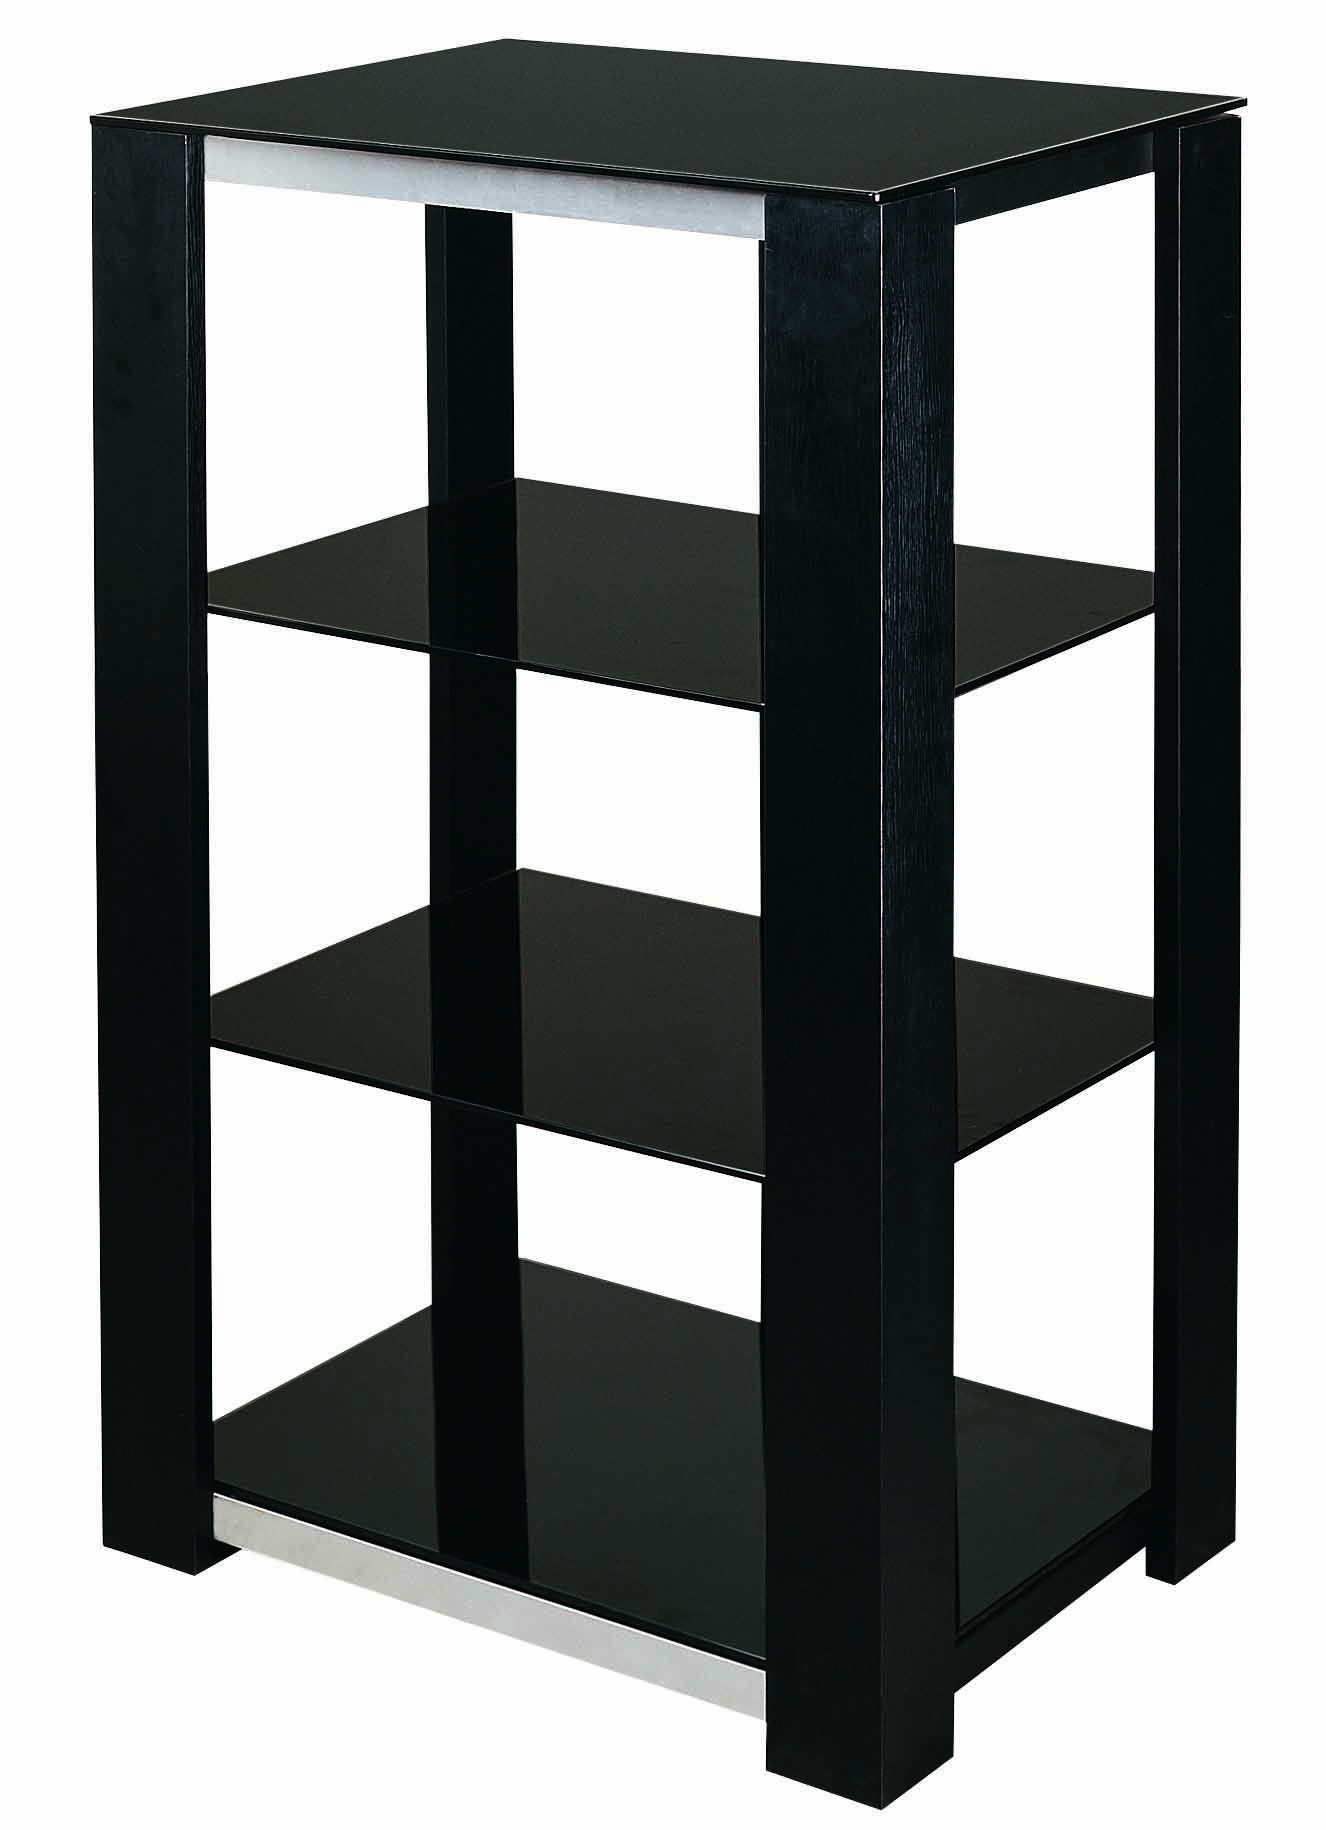 s hold 7 audio rack in black tempered black glass mdf board with rh pinterest com  audio video rack wiring